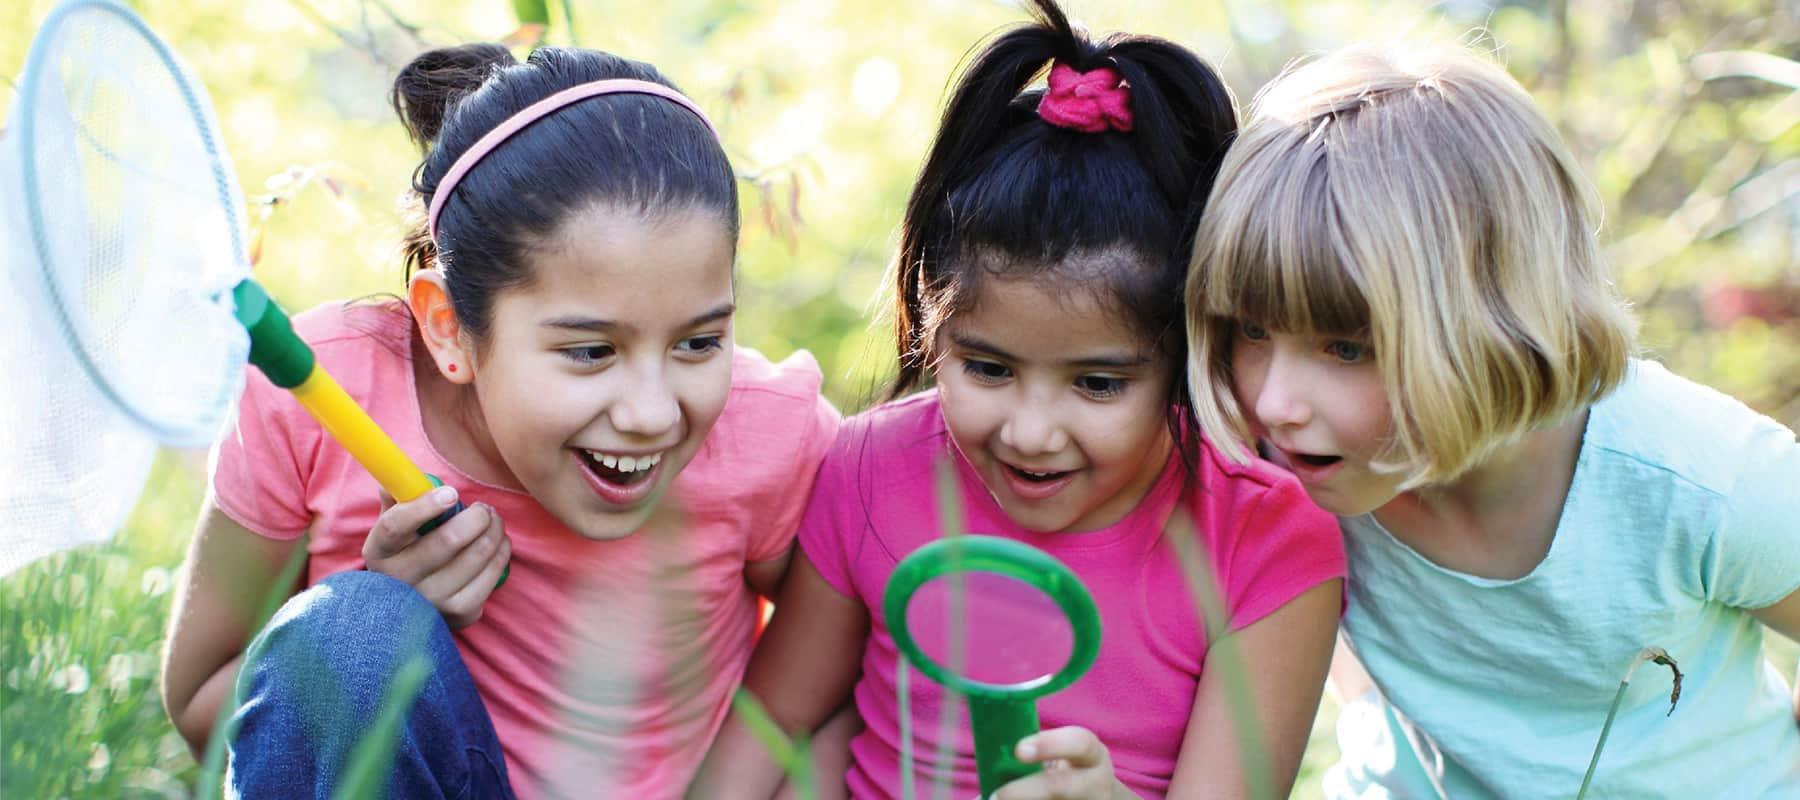 Three young girls crouch down to look closely at something in nature with a magnifying glass.